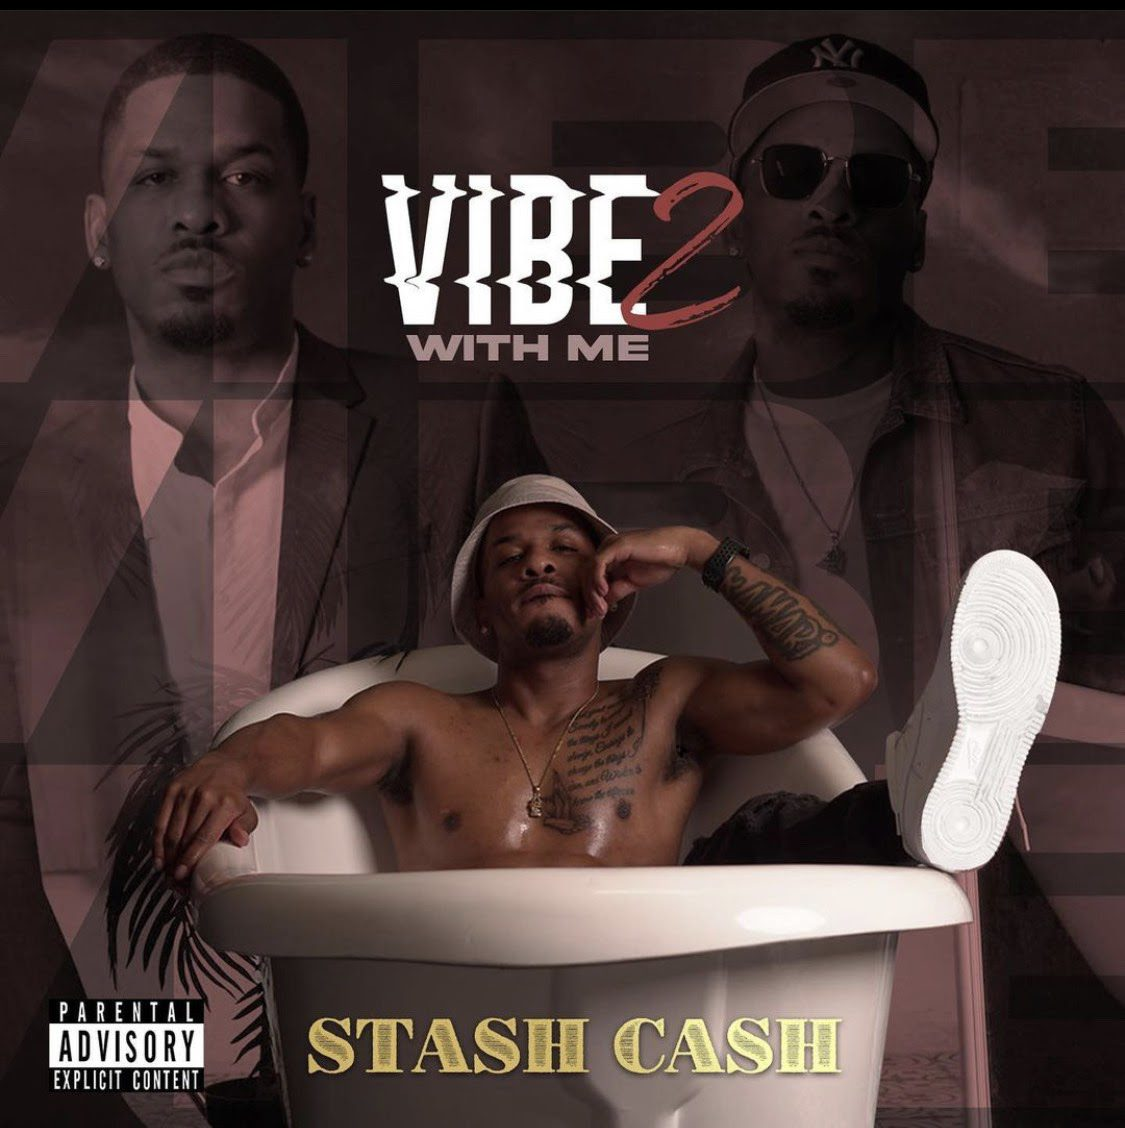 Cover photo for Vibe With Me 2 by Stash Cash